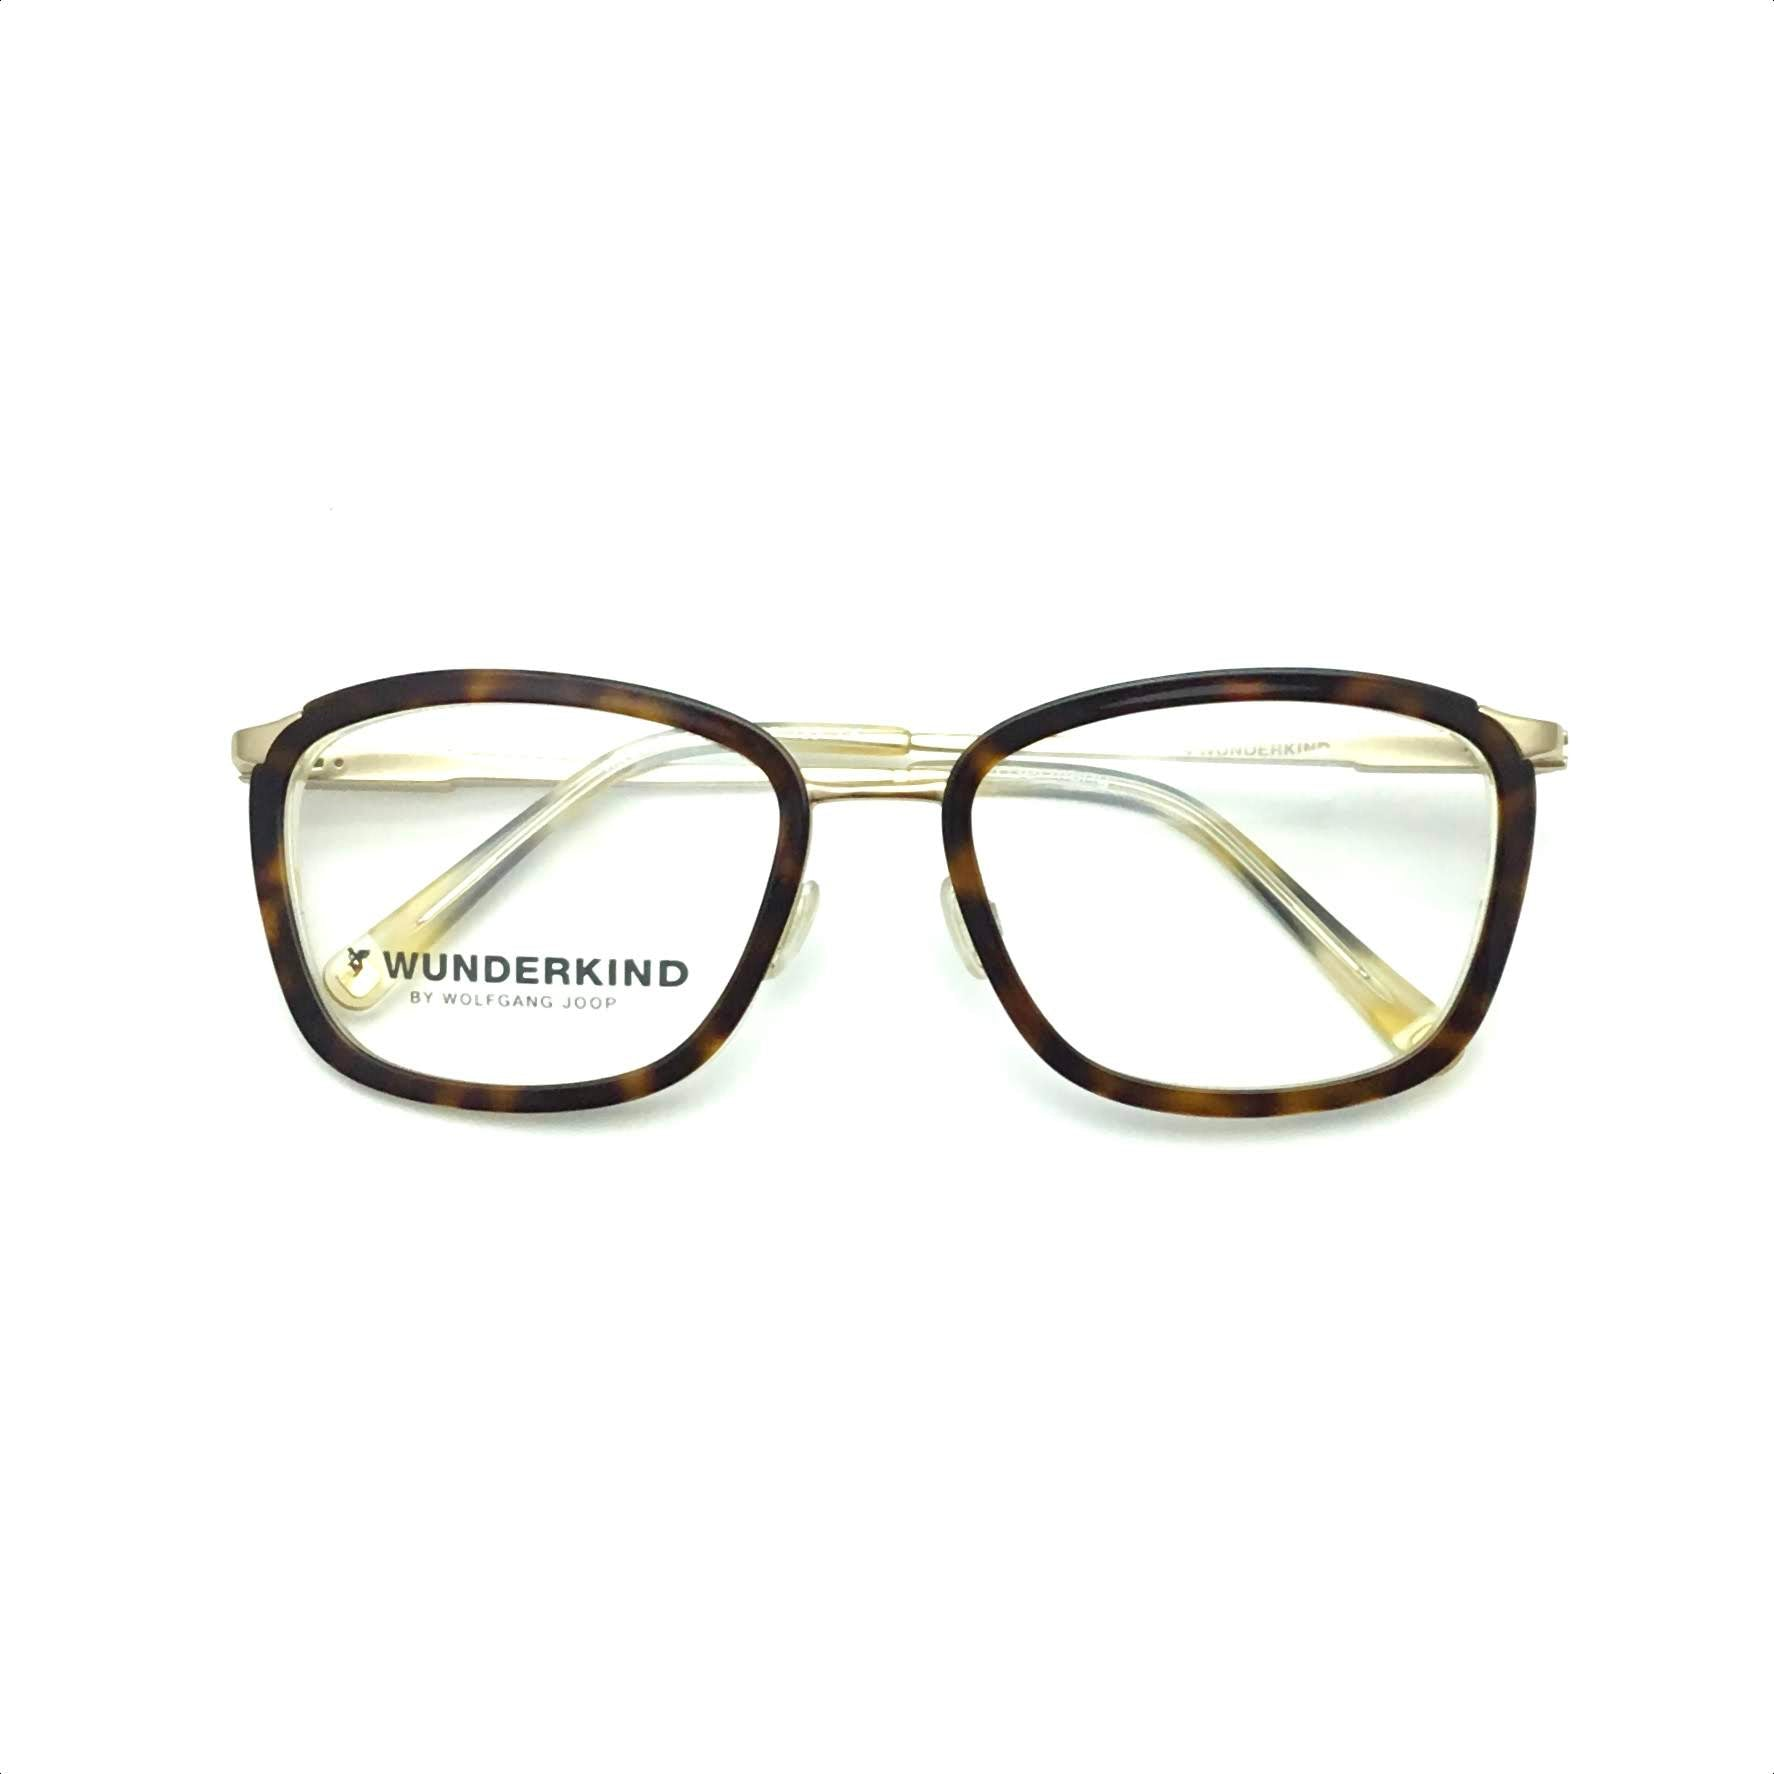 Wunder Kind Glasses $219 GERMANY L9